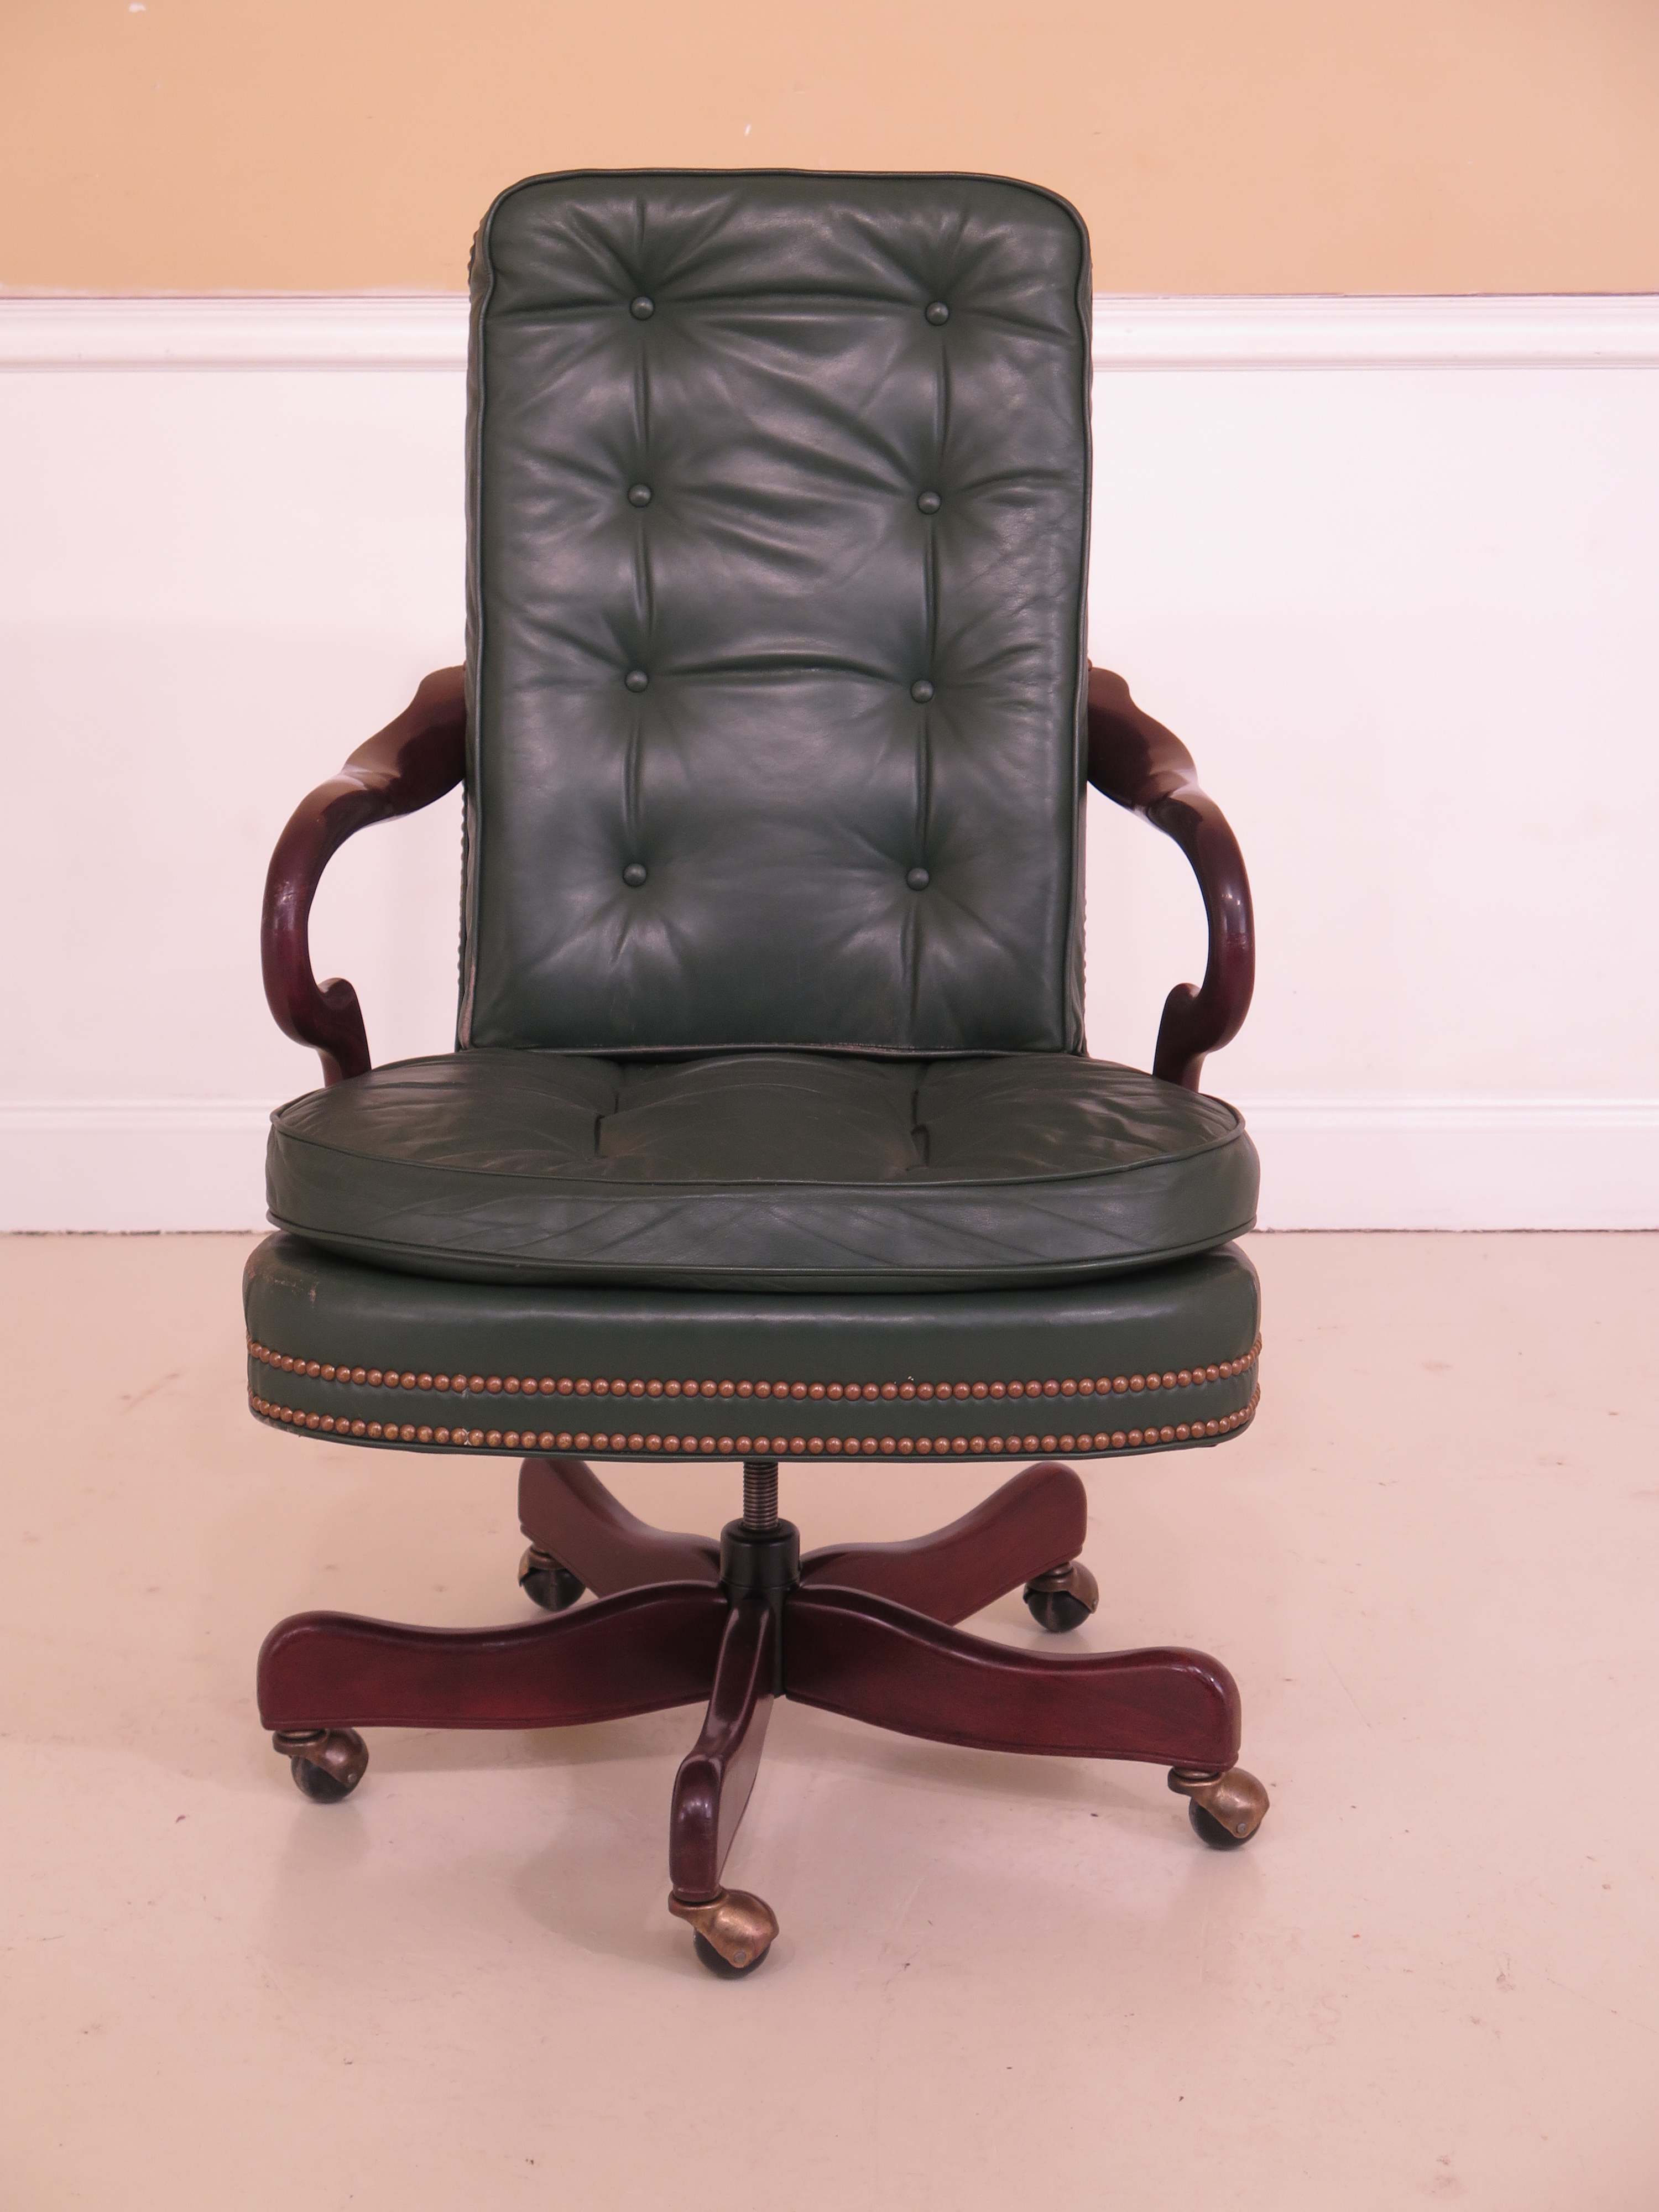 Hancock U0026 Moore Tufted Green Leather Office Chair   Image 13 Of 13